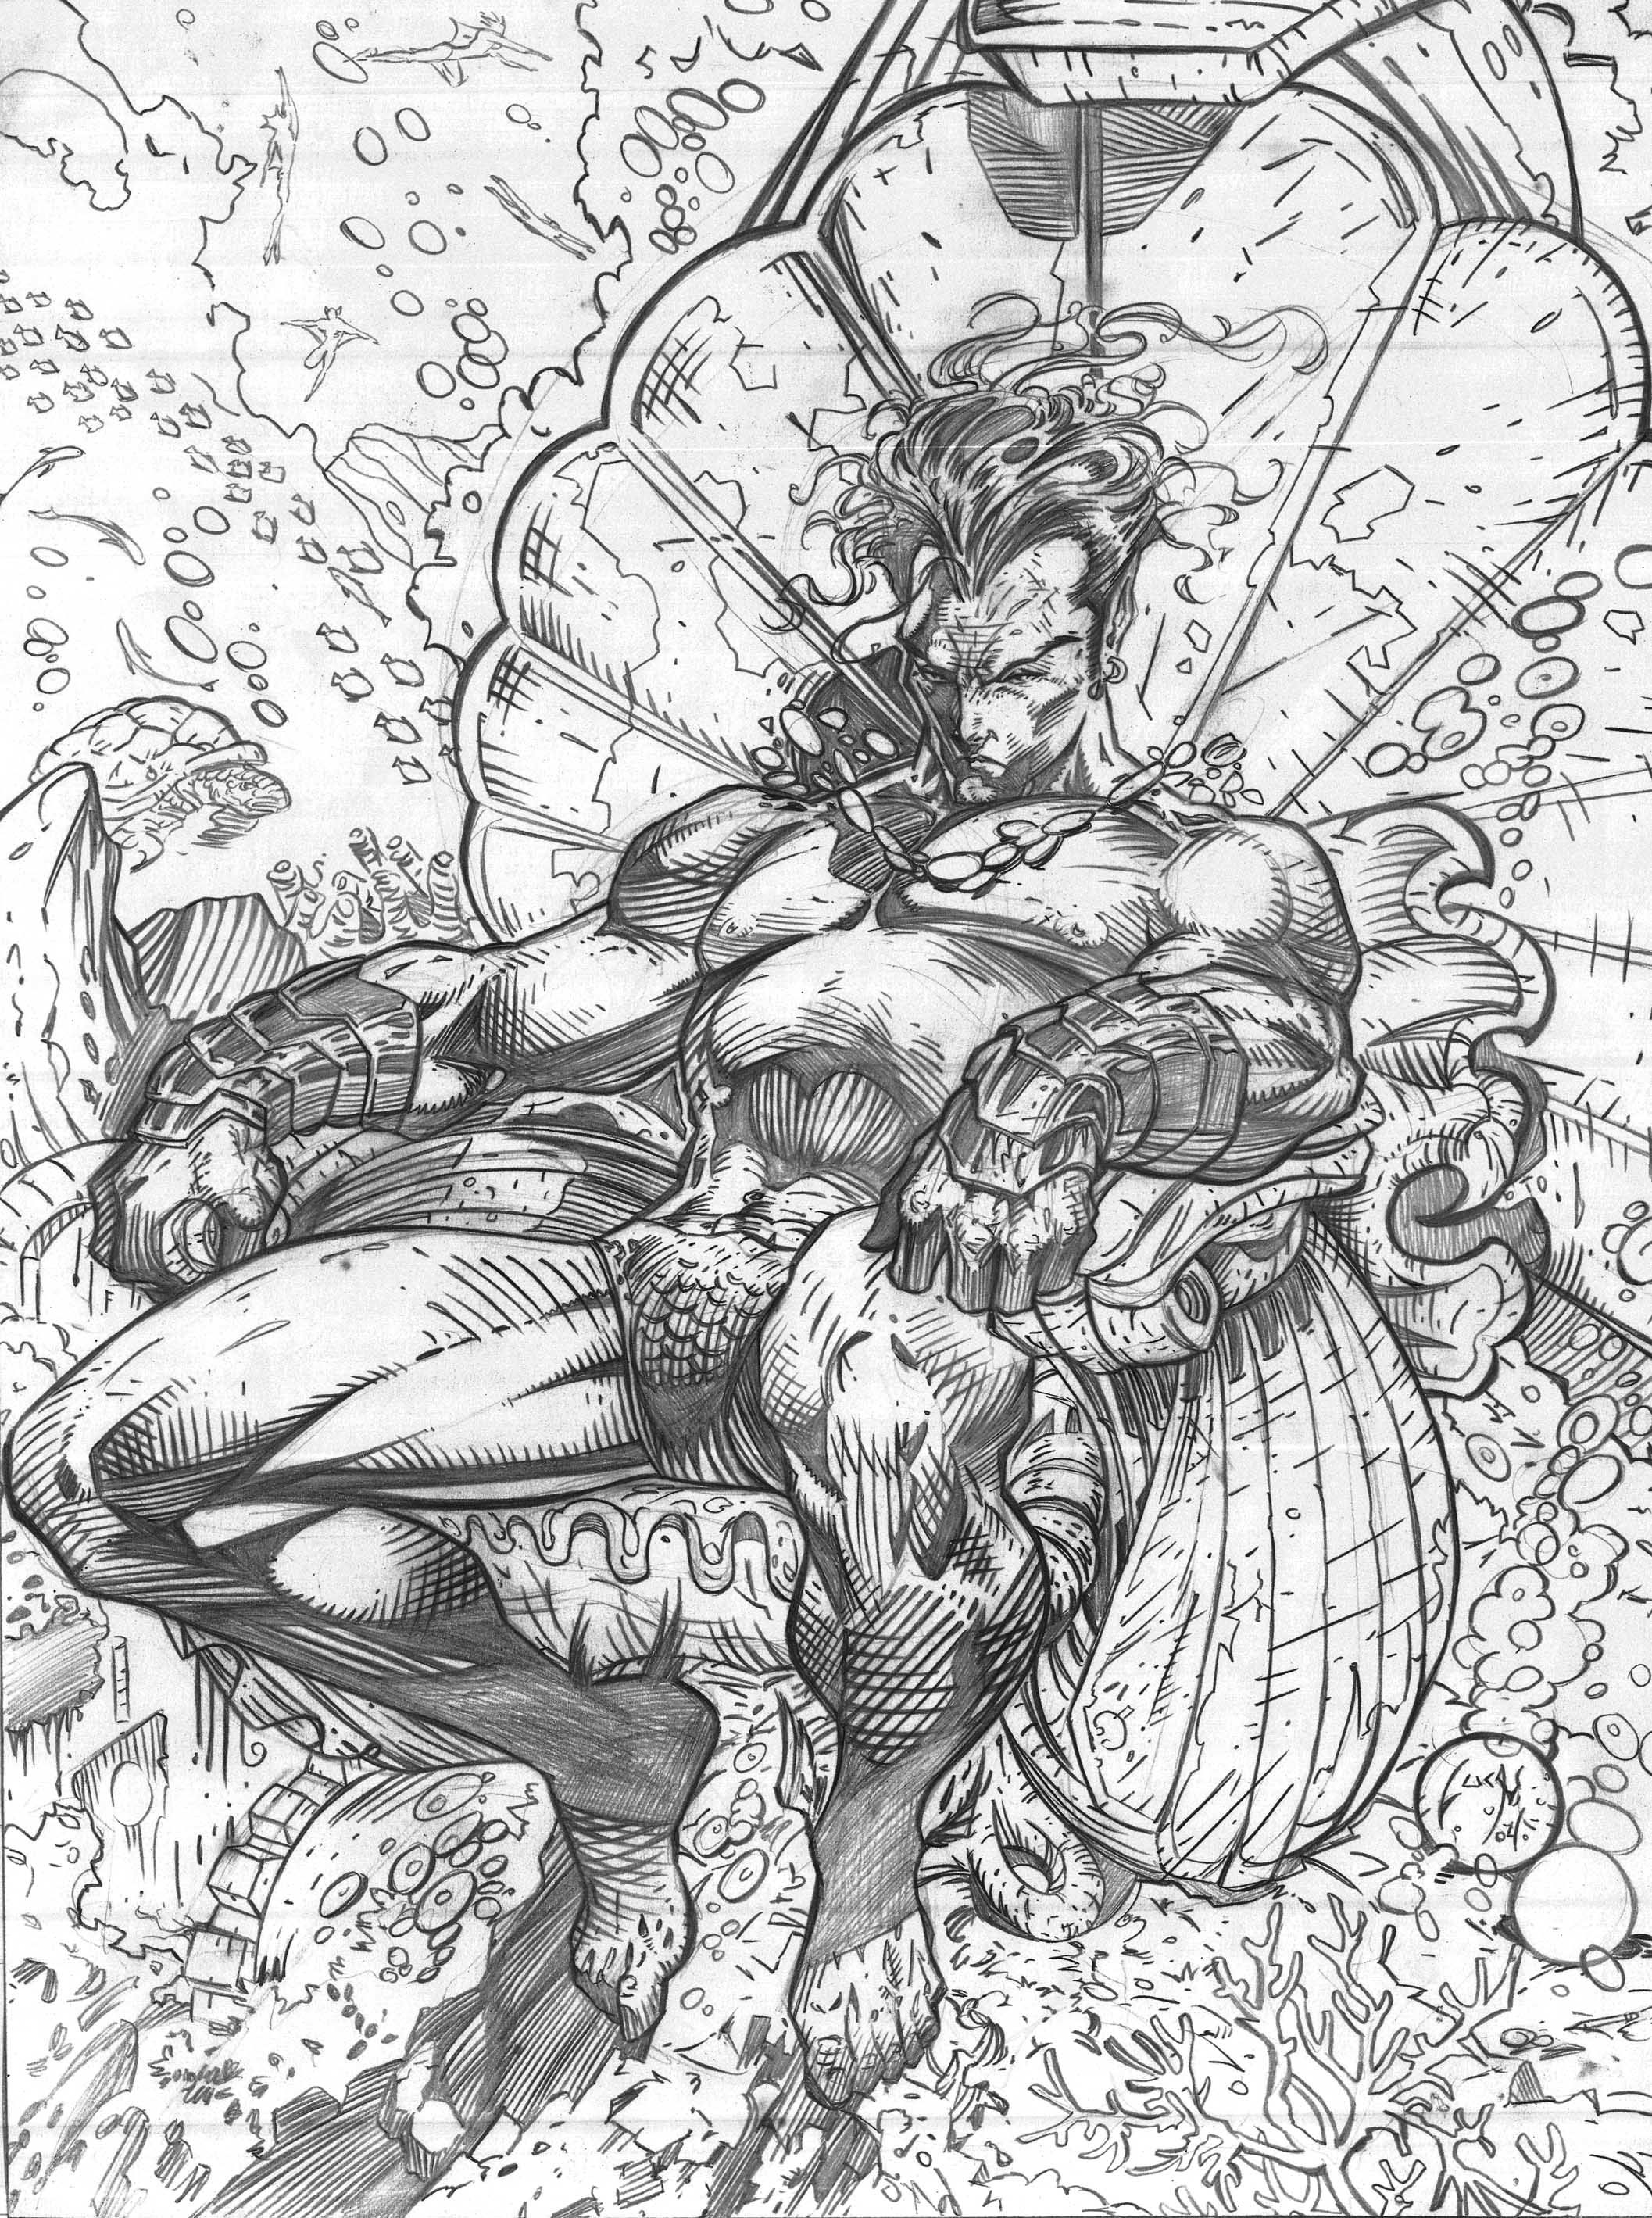 Submarine Sketch And Drawing Of The Art Of Jim Lee Comics